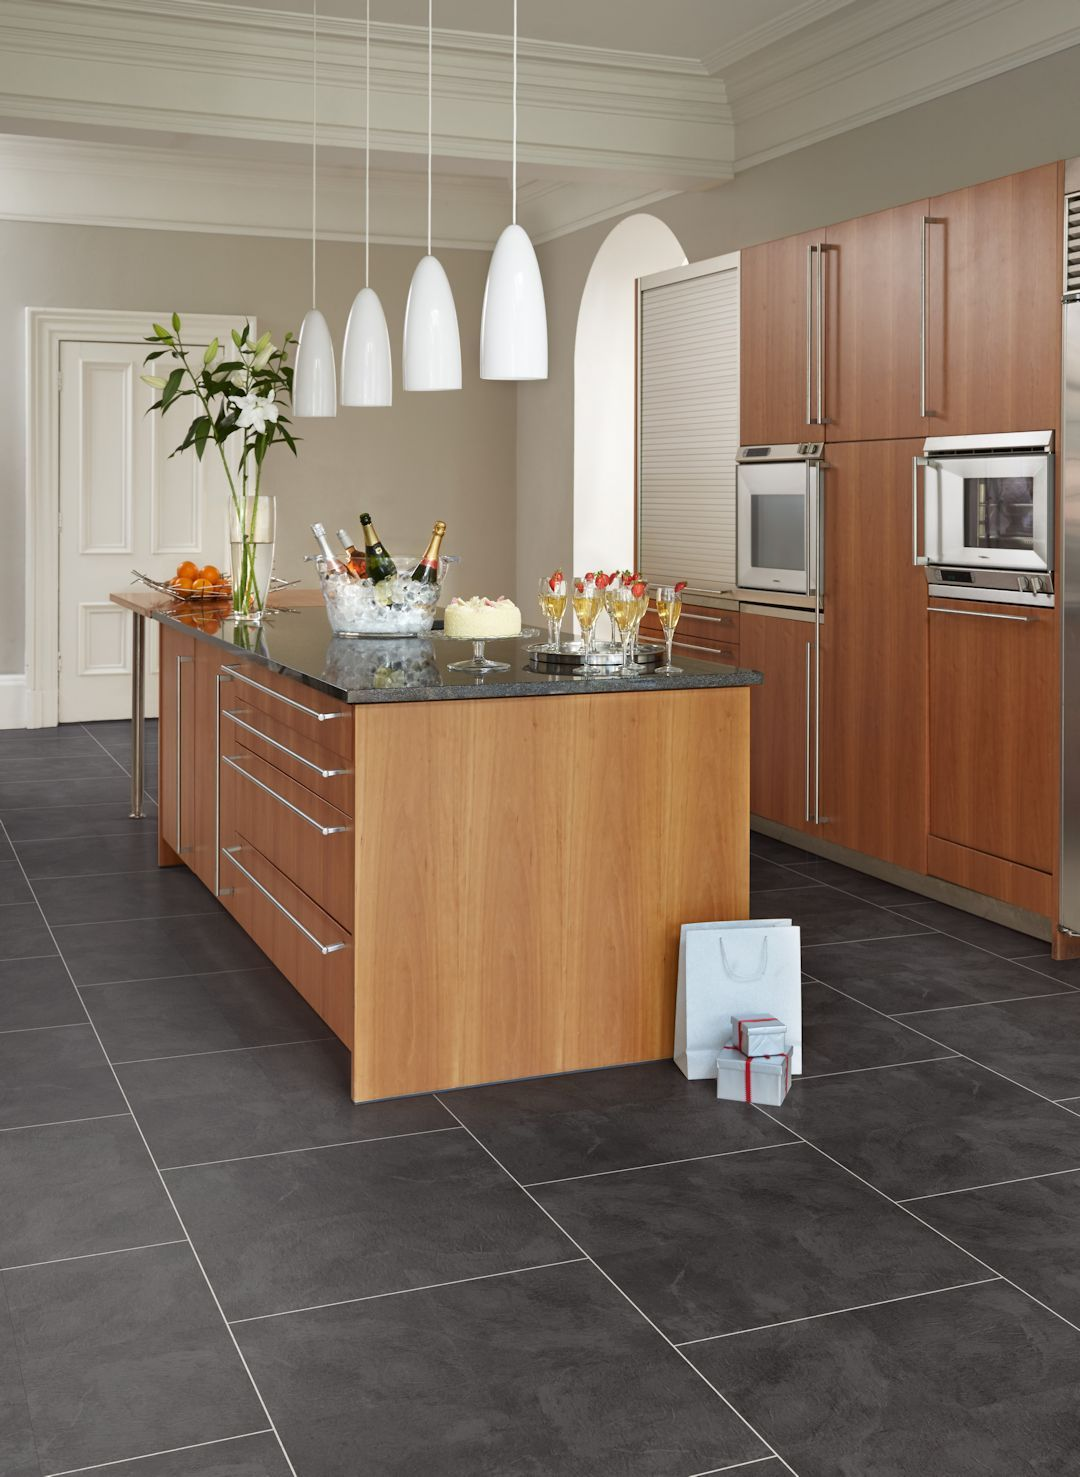 Kitchen Floors Vinyl Atlantic Slate Camaro Luxury Vinyl Tile Flooring In Brickwork